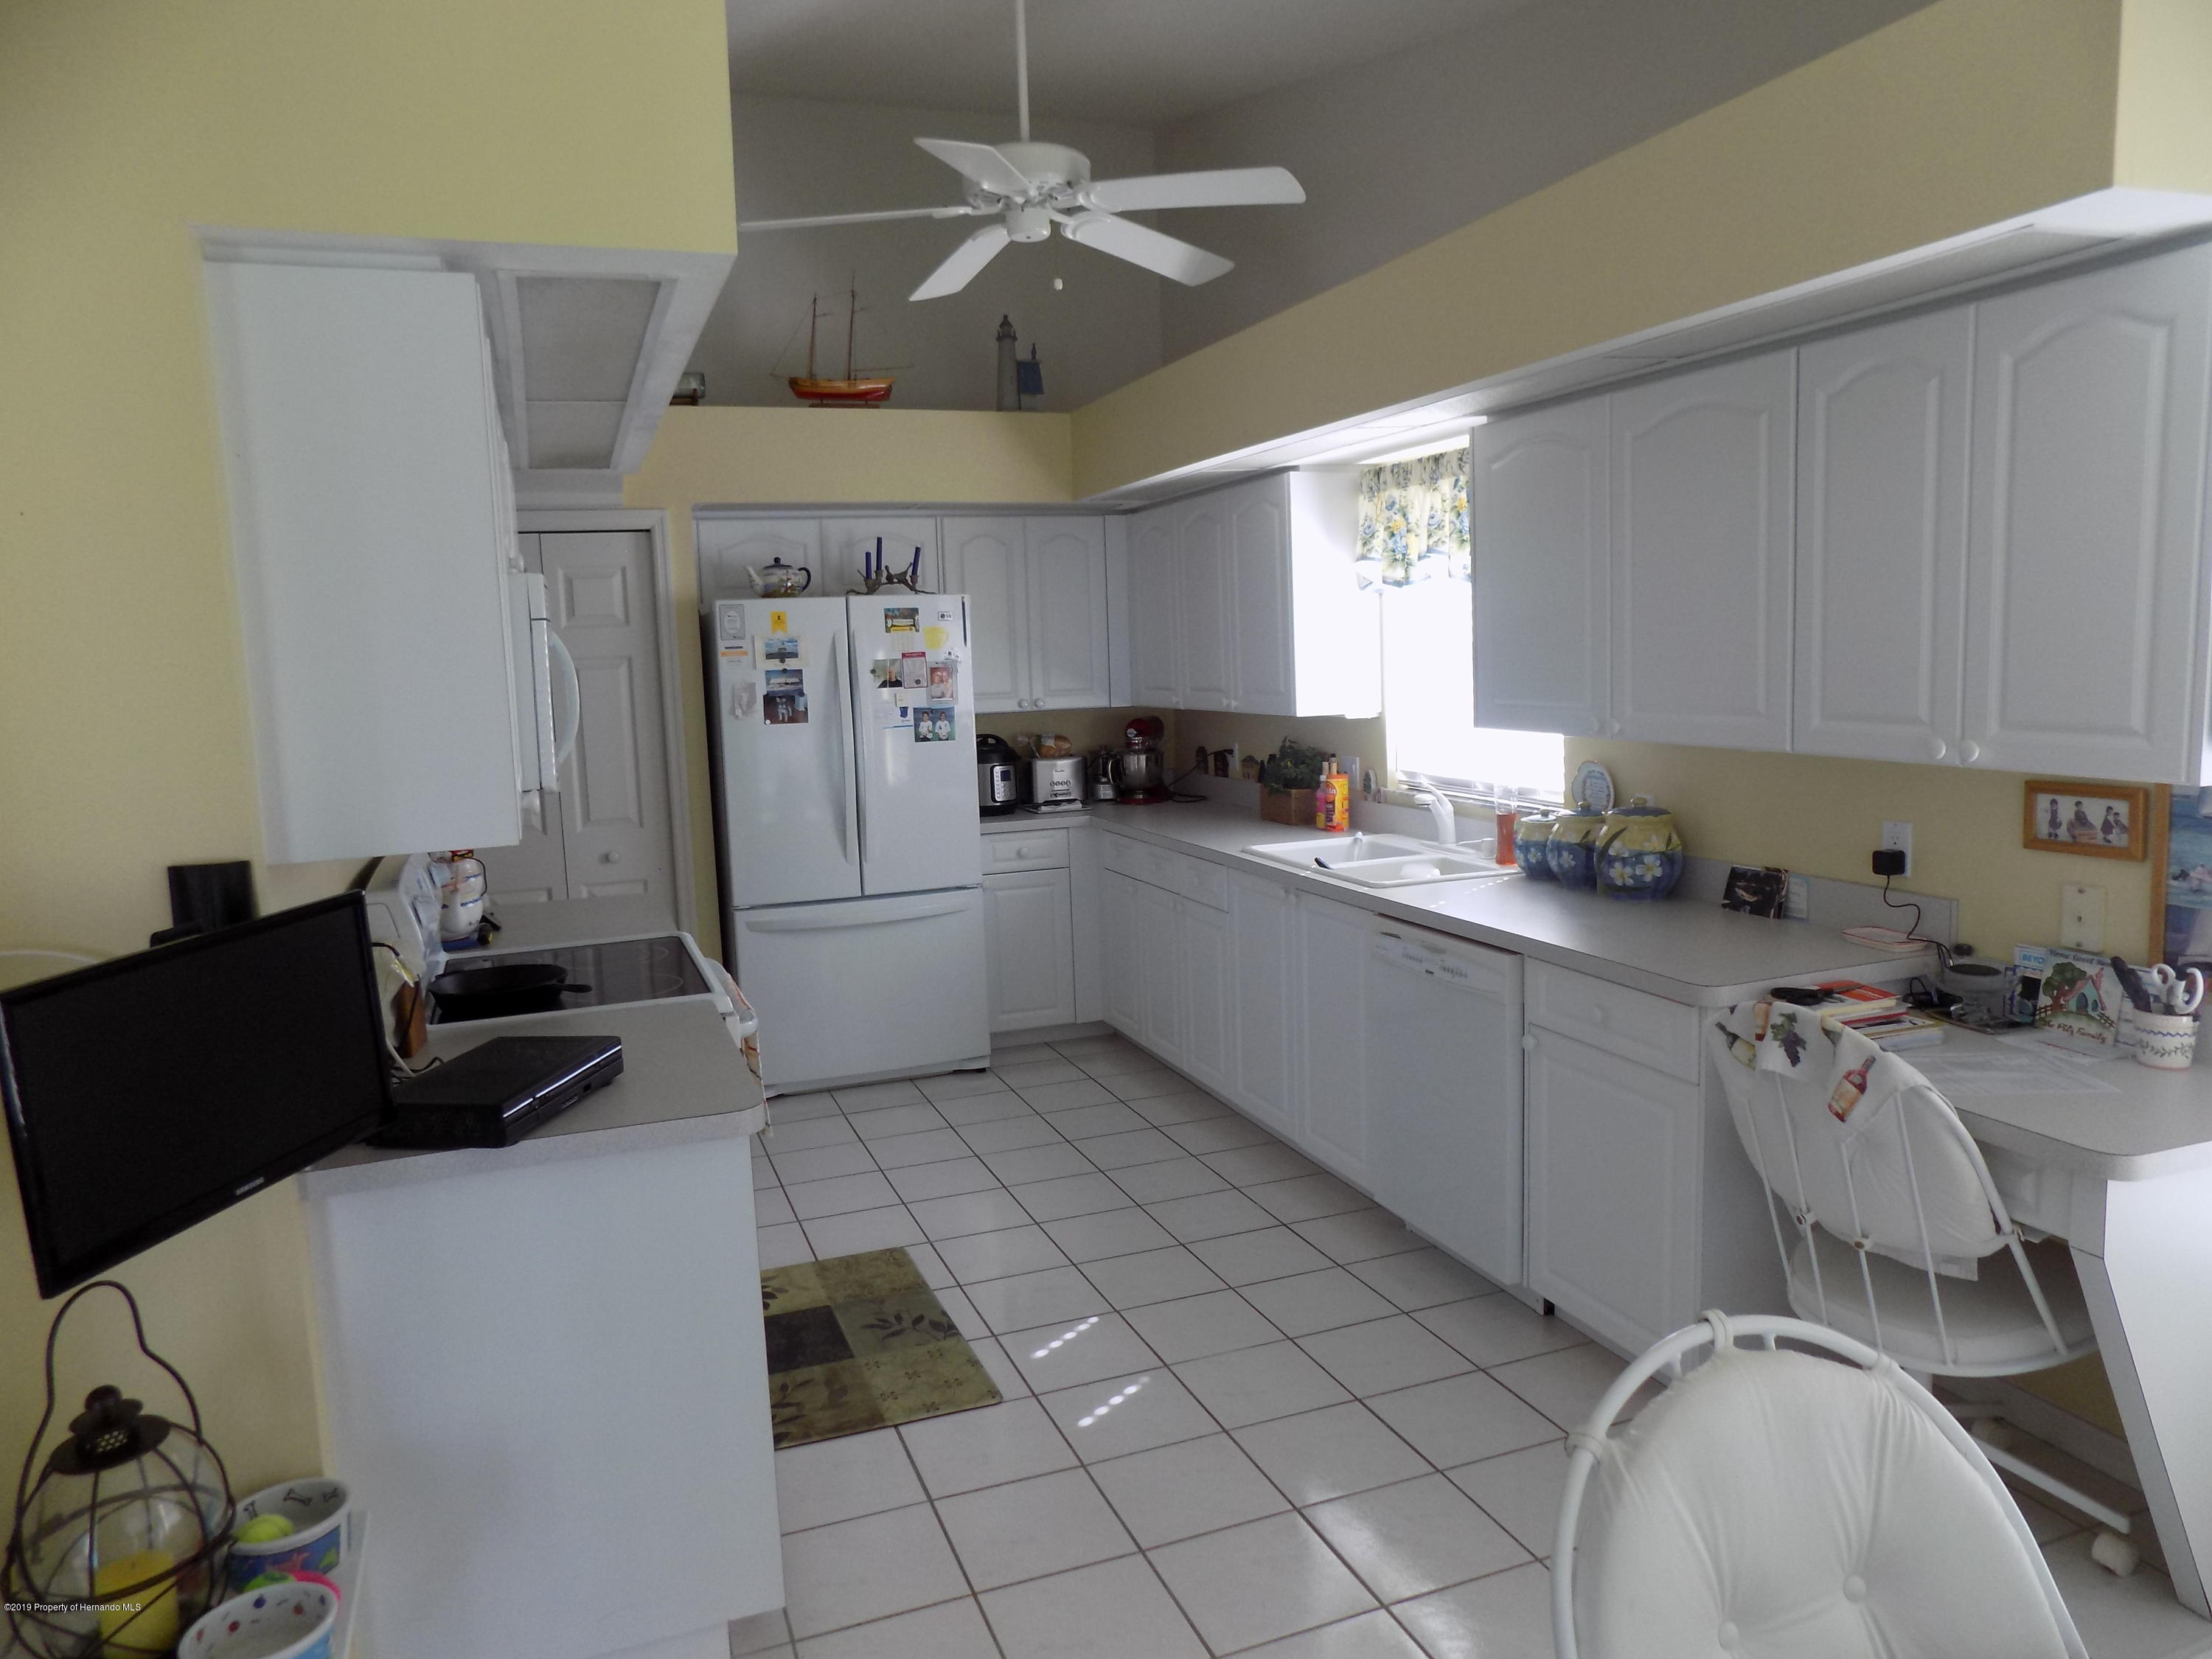 7481 Rosemont Lane, Spring Hill, Florida 34606, 3 Bedrooms Bedrooms, ,2 BathroomsBathrooms,Residential,For Sale,Rosemont,2199581